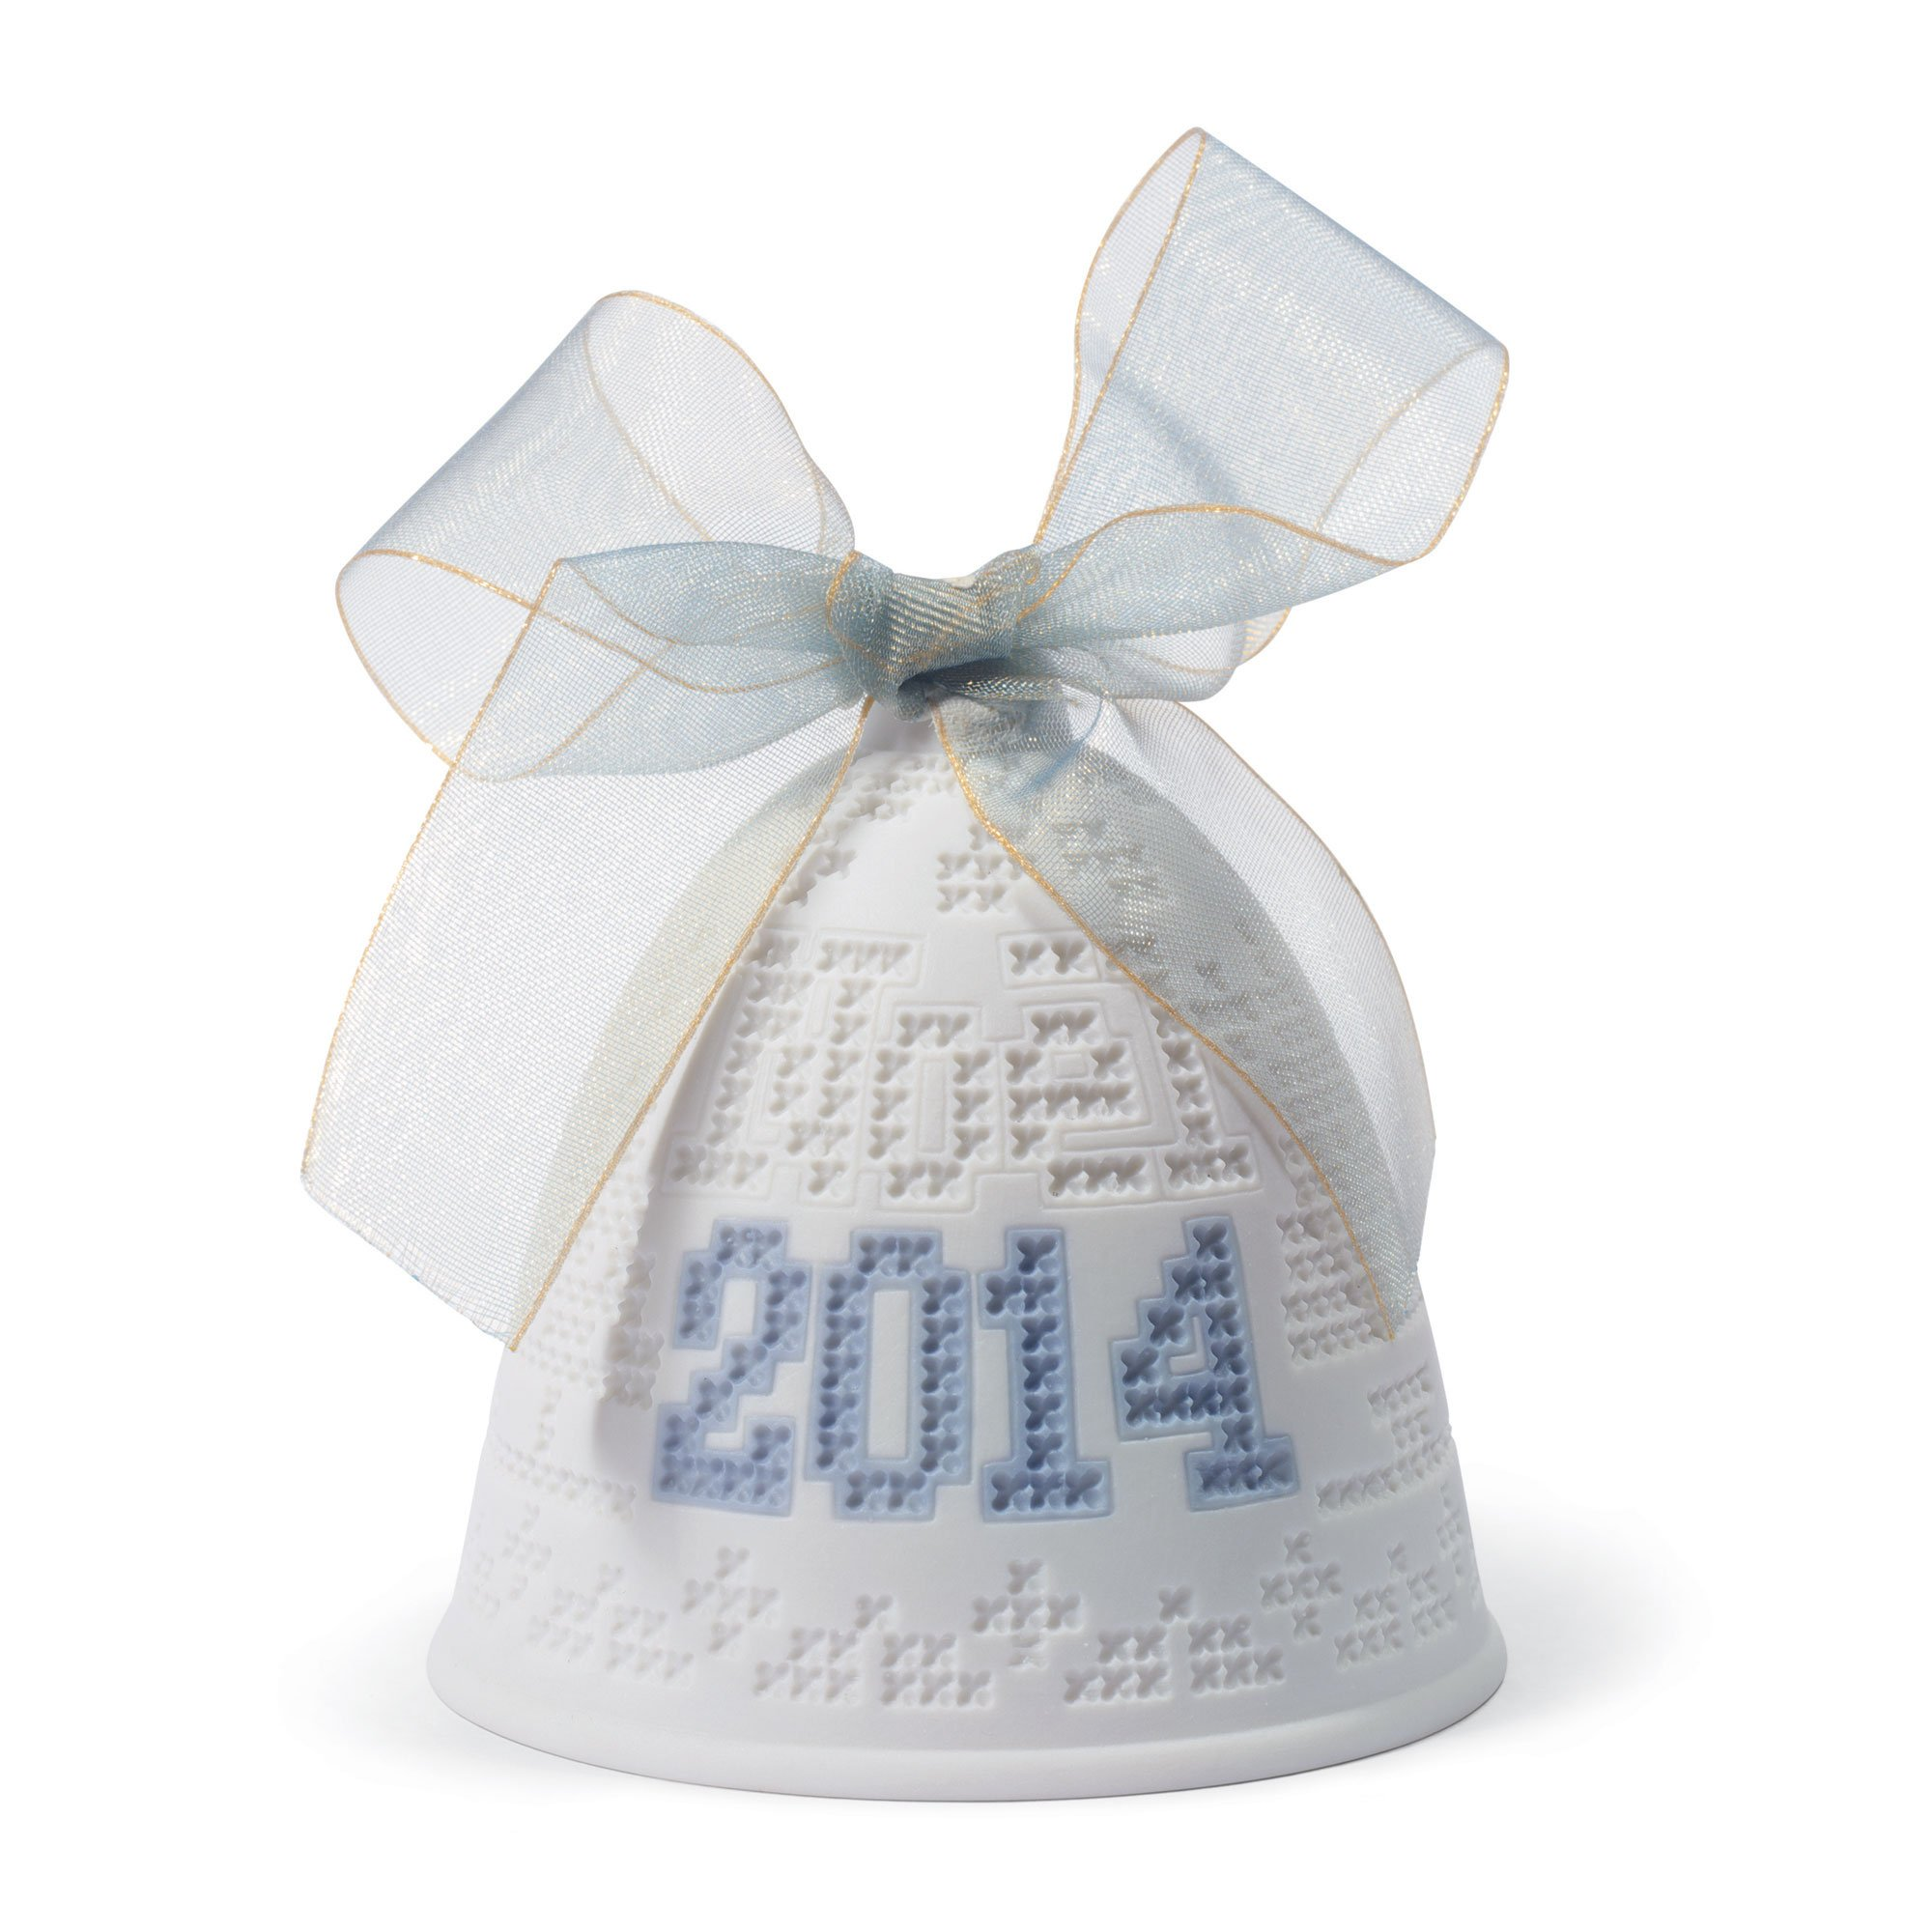 Lladro 2014 Christmas Bell Ornament